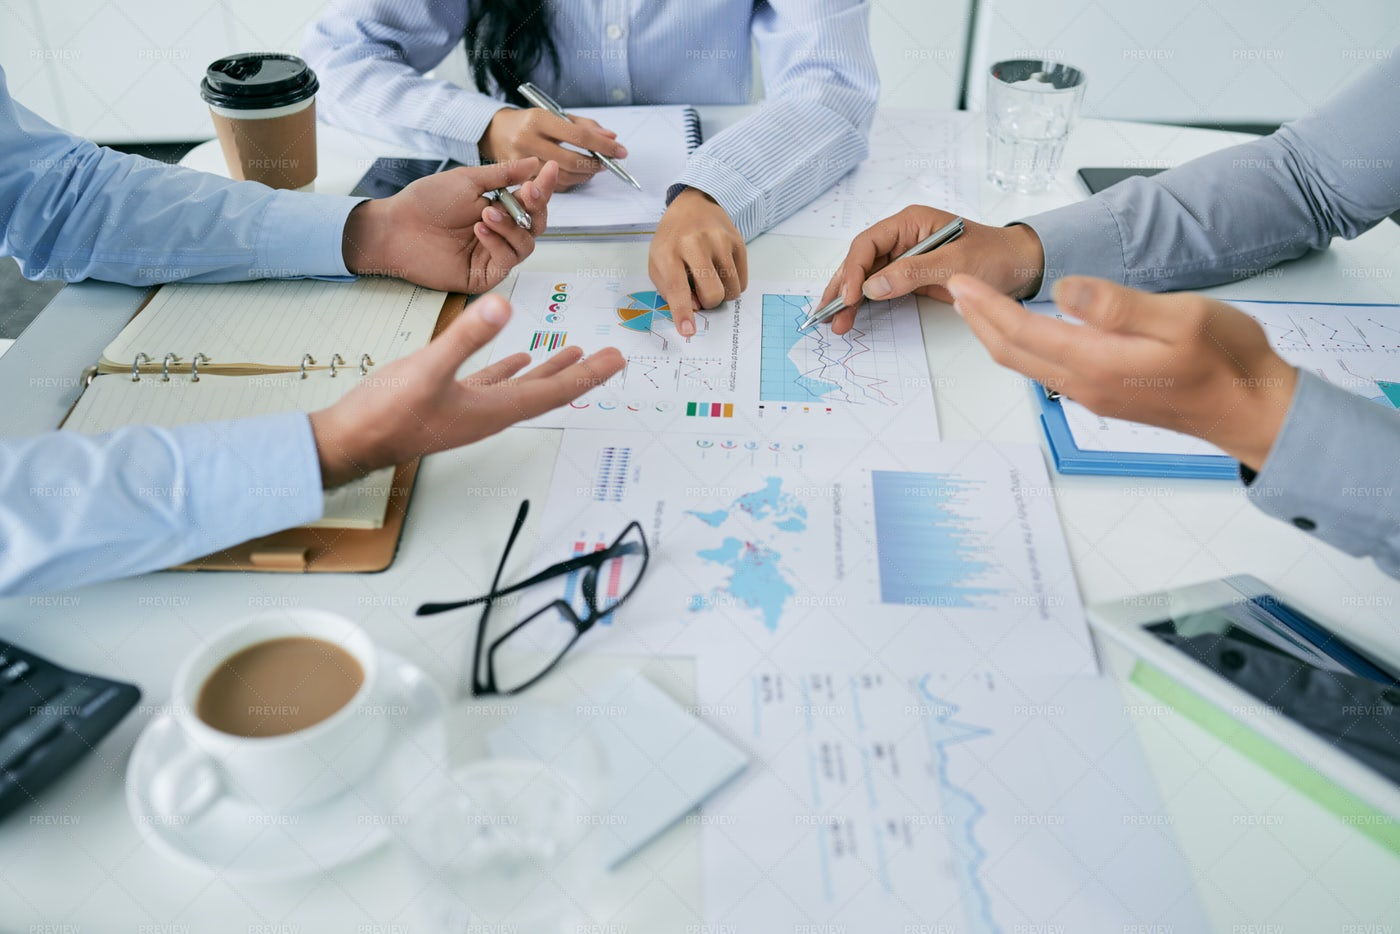 Conflict About Financial Data: Stock Photos